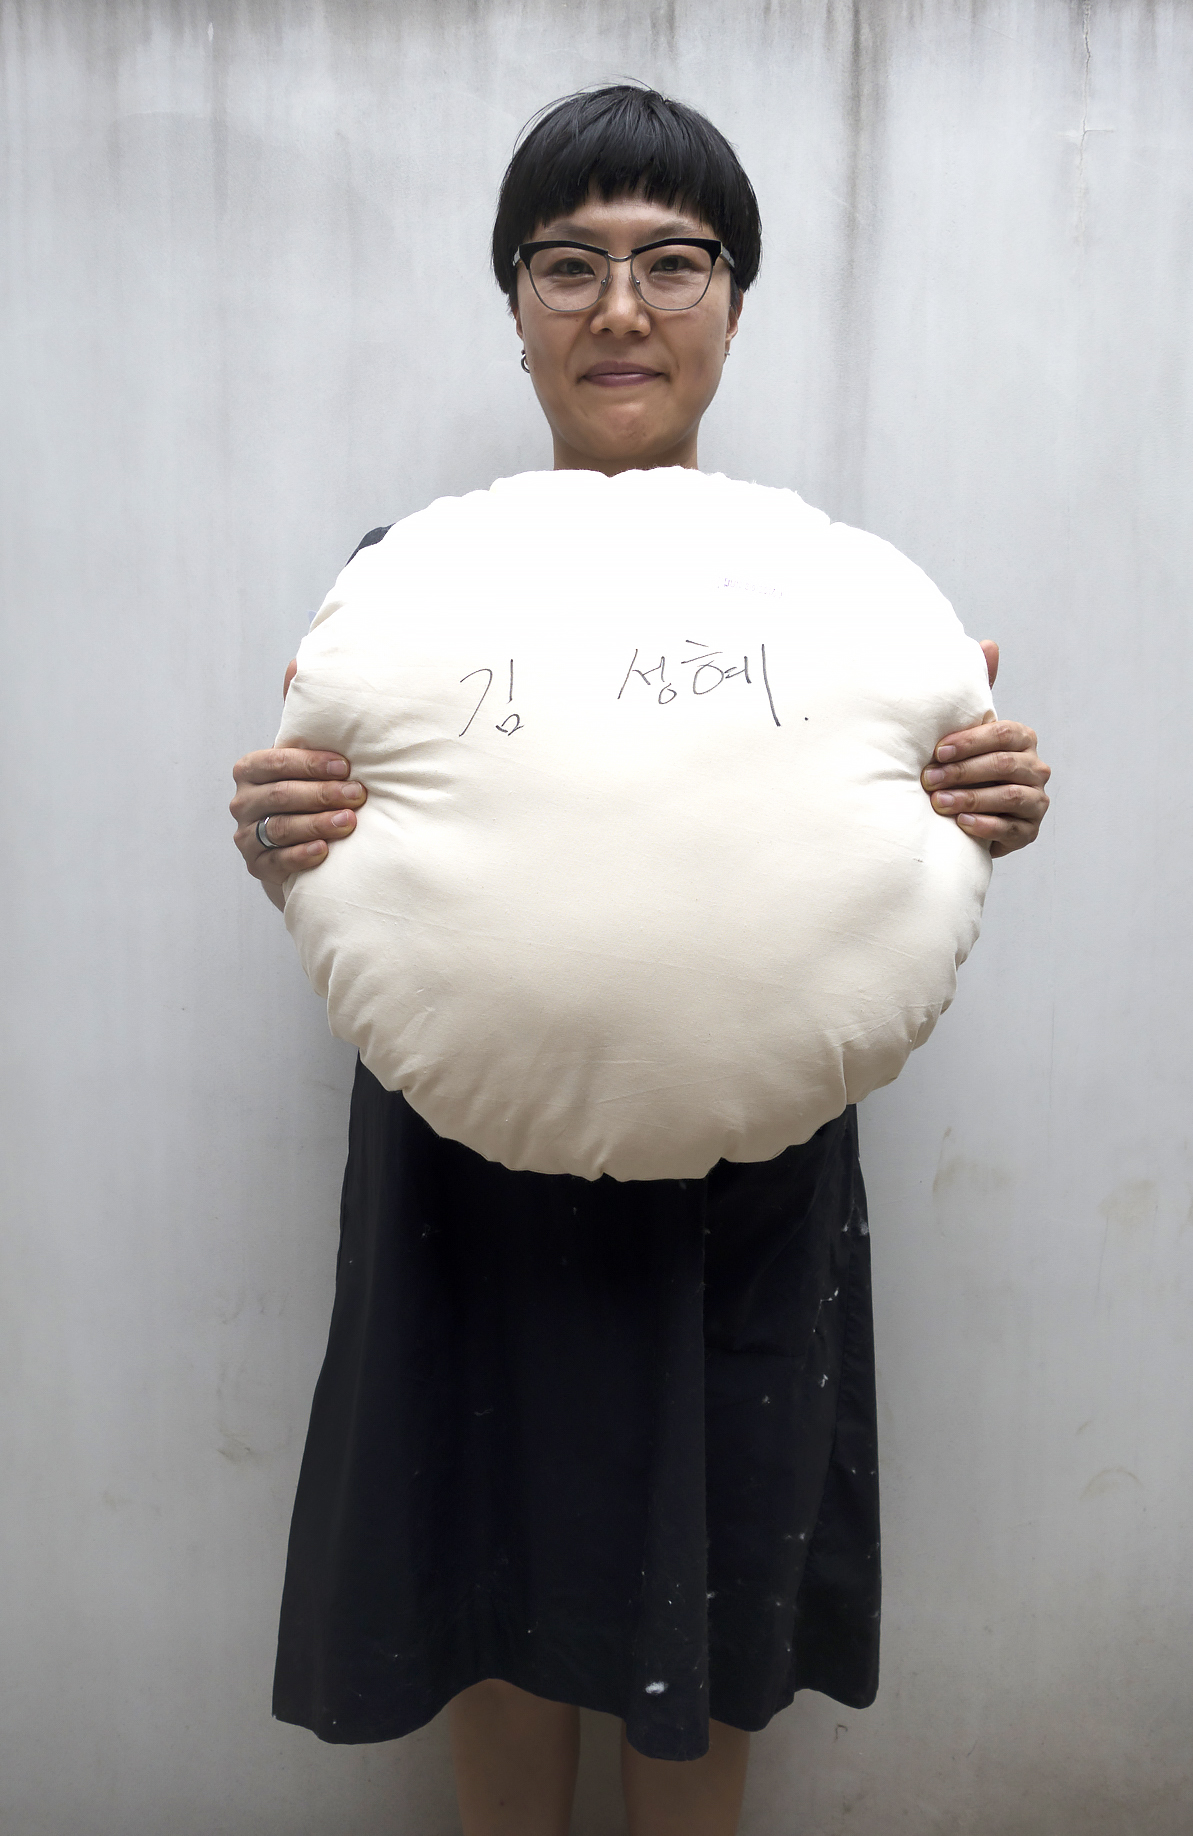 011_dosa_three_stone_pillow_workshop_GF_dosa.jpg